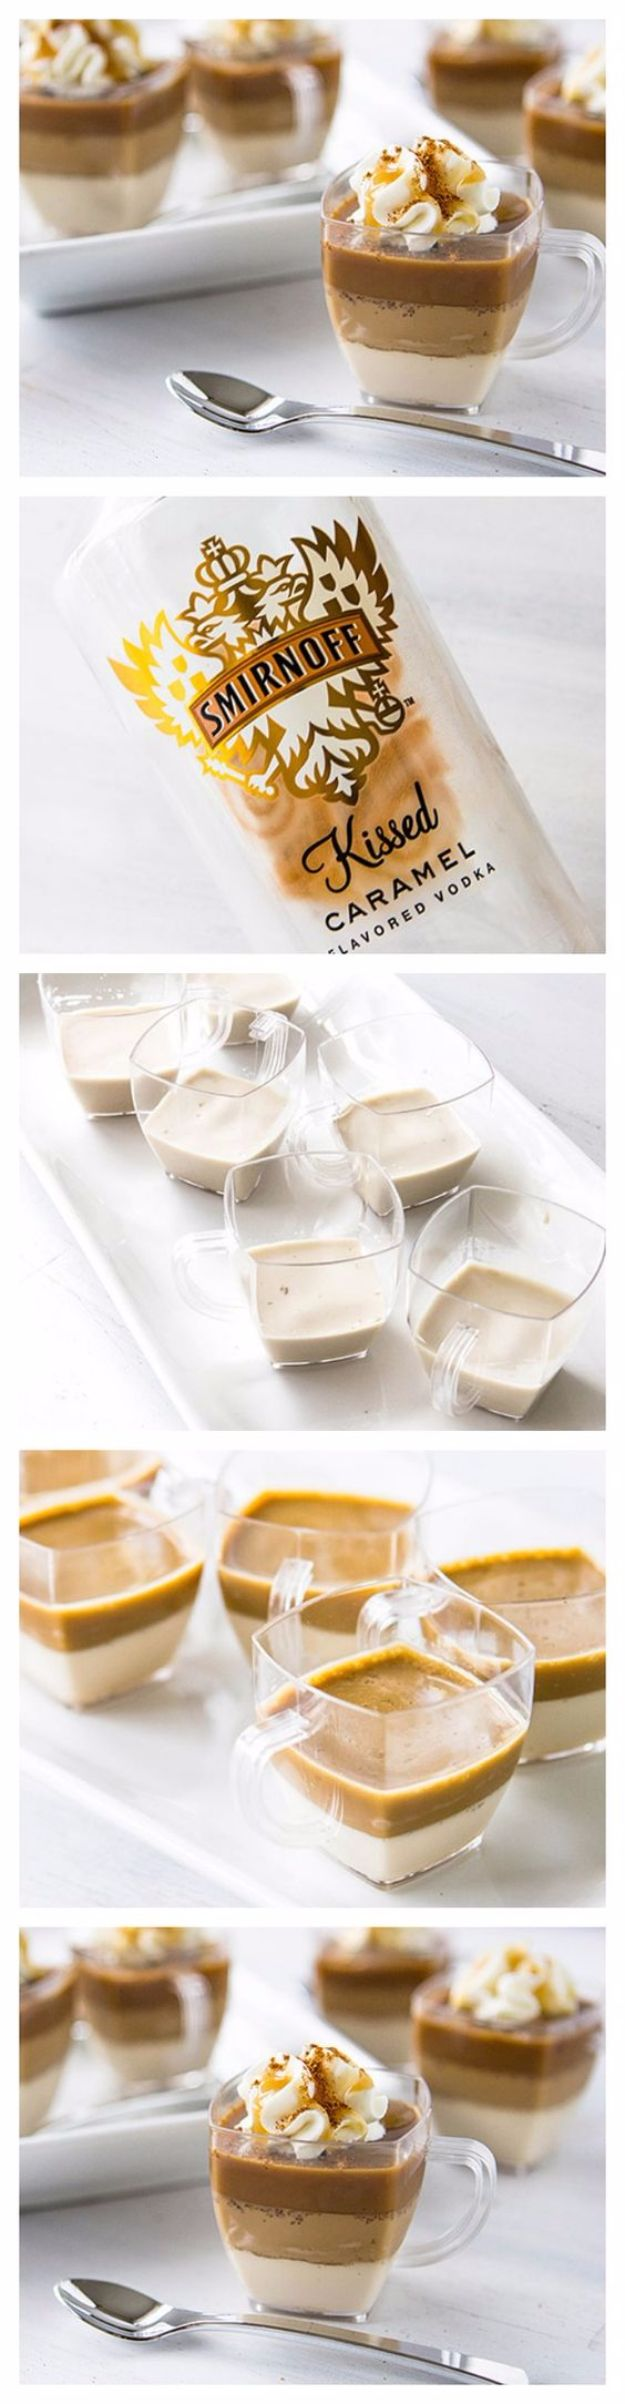 Best Jello Shot Recipes - Caramel Macchiato Jello Shots - Easy Jello Shots Recipe Ideas with Vodka, Strawberry, Tequila, Rum, Jolly Rancher and Creative Alcohol - Unique and Fun Drinks for Parties like Whiskey Fireball, Fall Halloween Versions, Malibu, 4th of July, Birthday, Summer, Christmas and Birthdays http://diyjoy.com/best-jello-shot-recipes